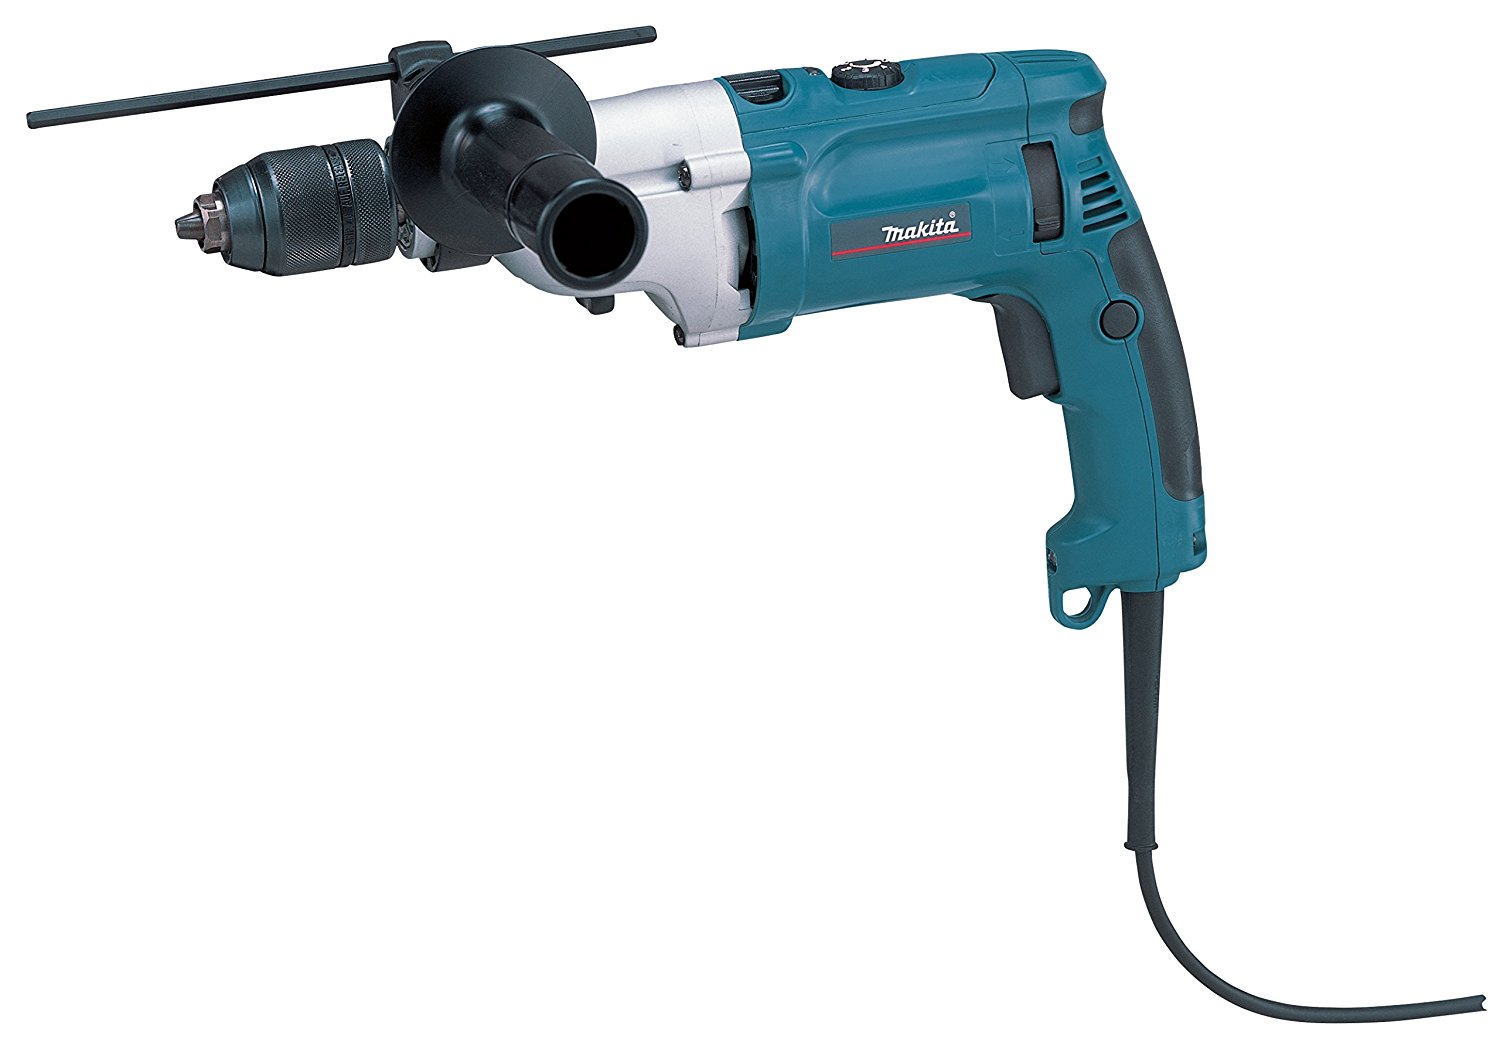 hp2071fj-makita-2 Avis test Makita Perceuse a percussion HP2071FJ